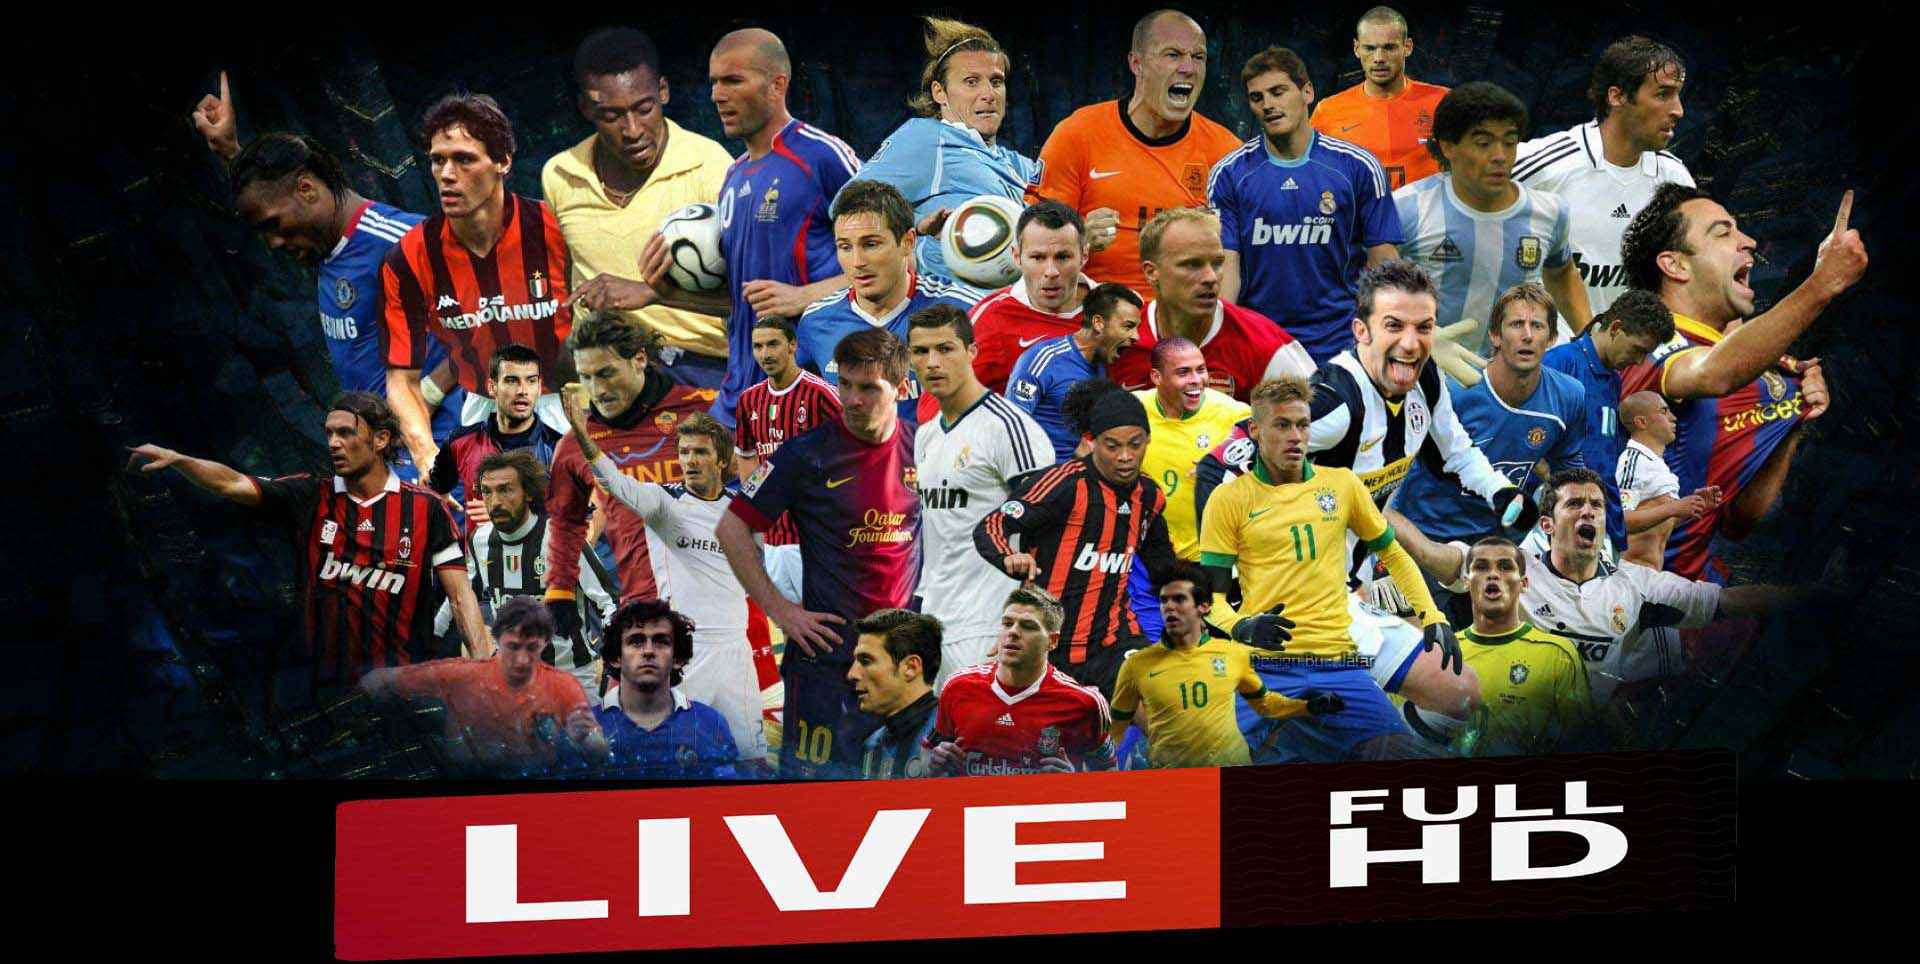 Real Madrid vs Juventus Final live stream